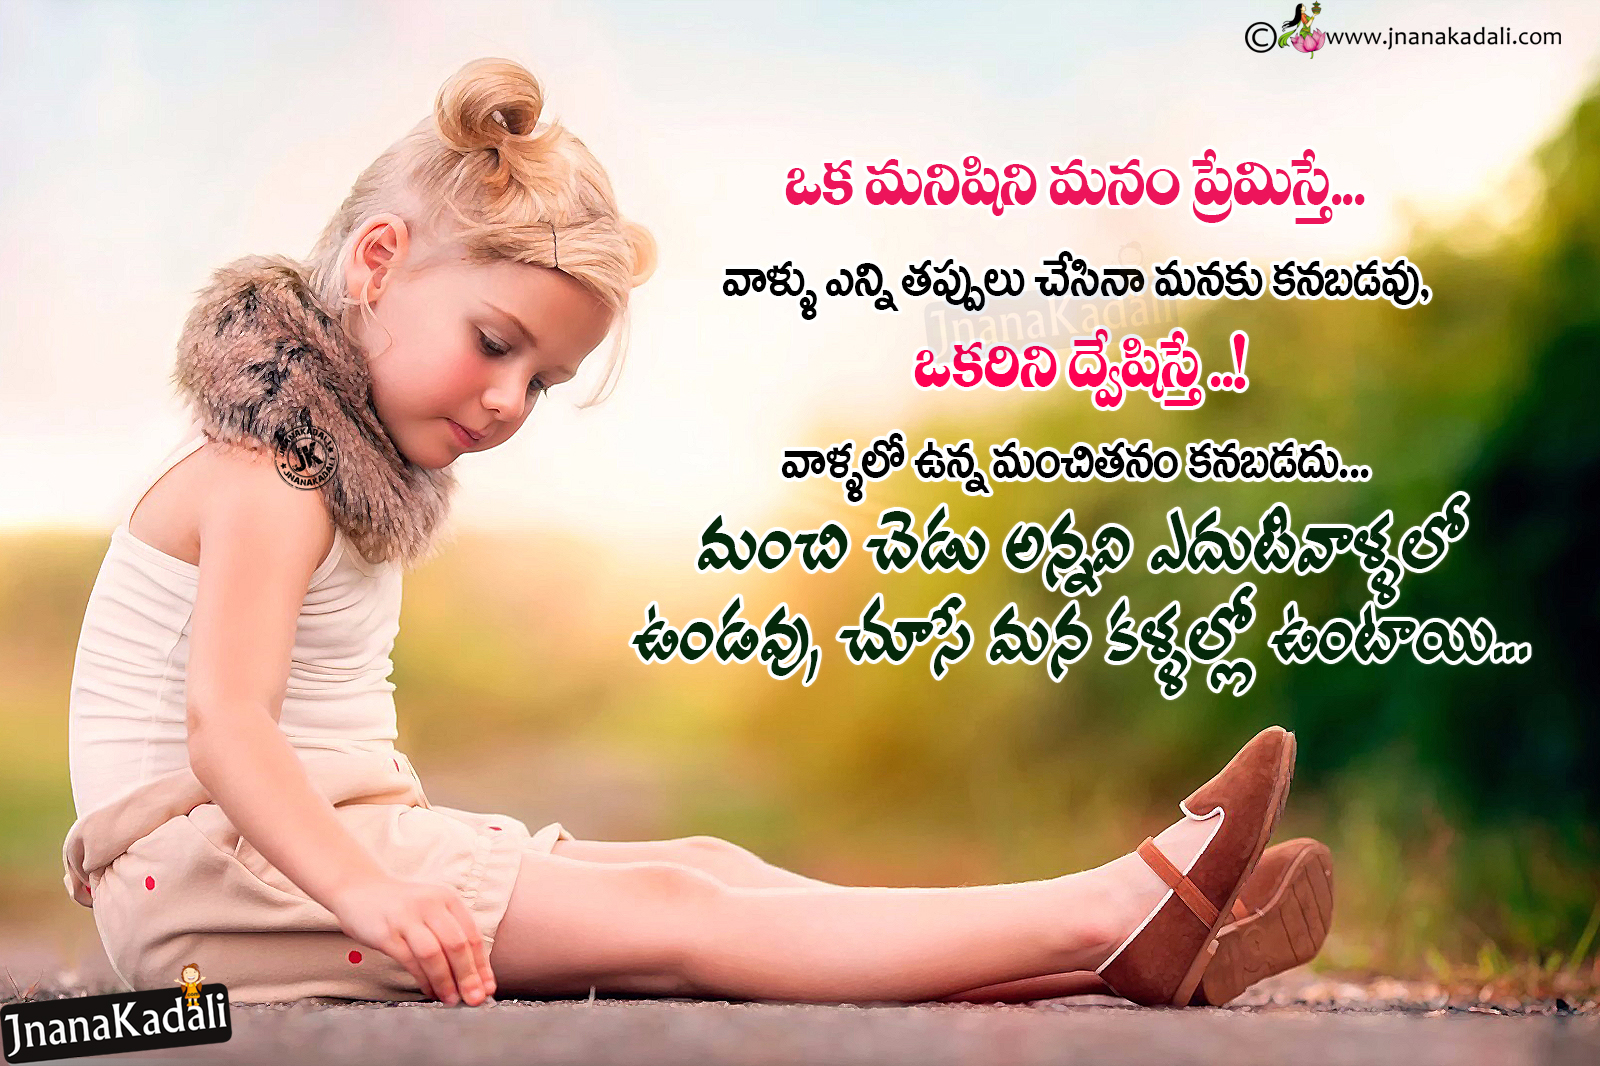 best Relationship Quotes in Telugu Telugu life Messages Being Human life Quotes in Telugu Cute baby hd wallpapers Free Famous Telugu Life Value